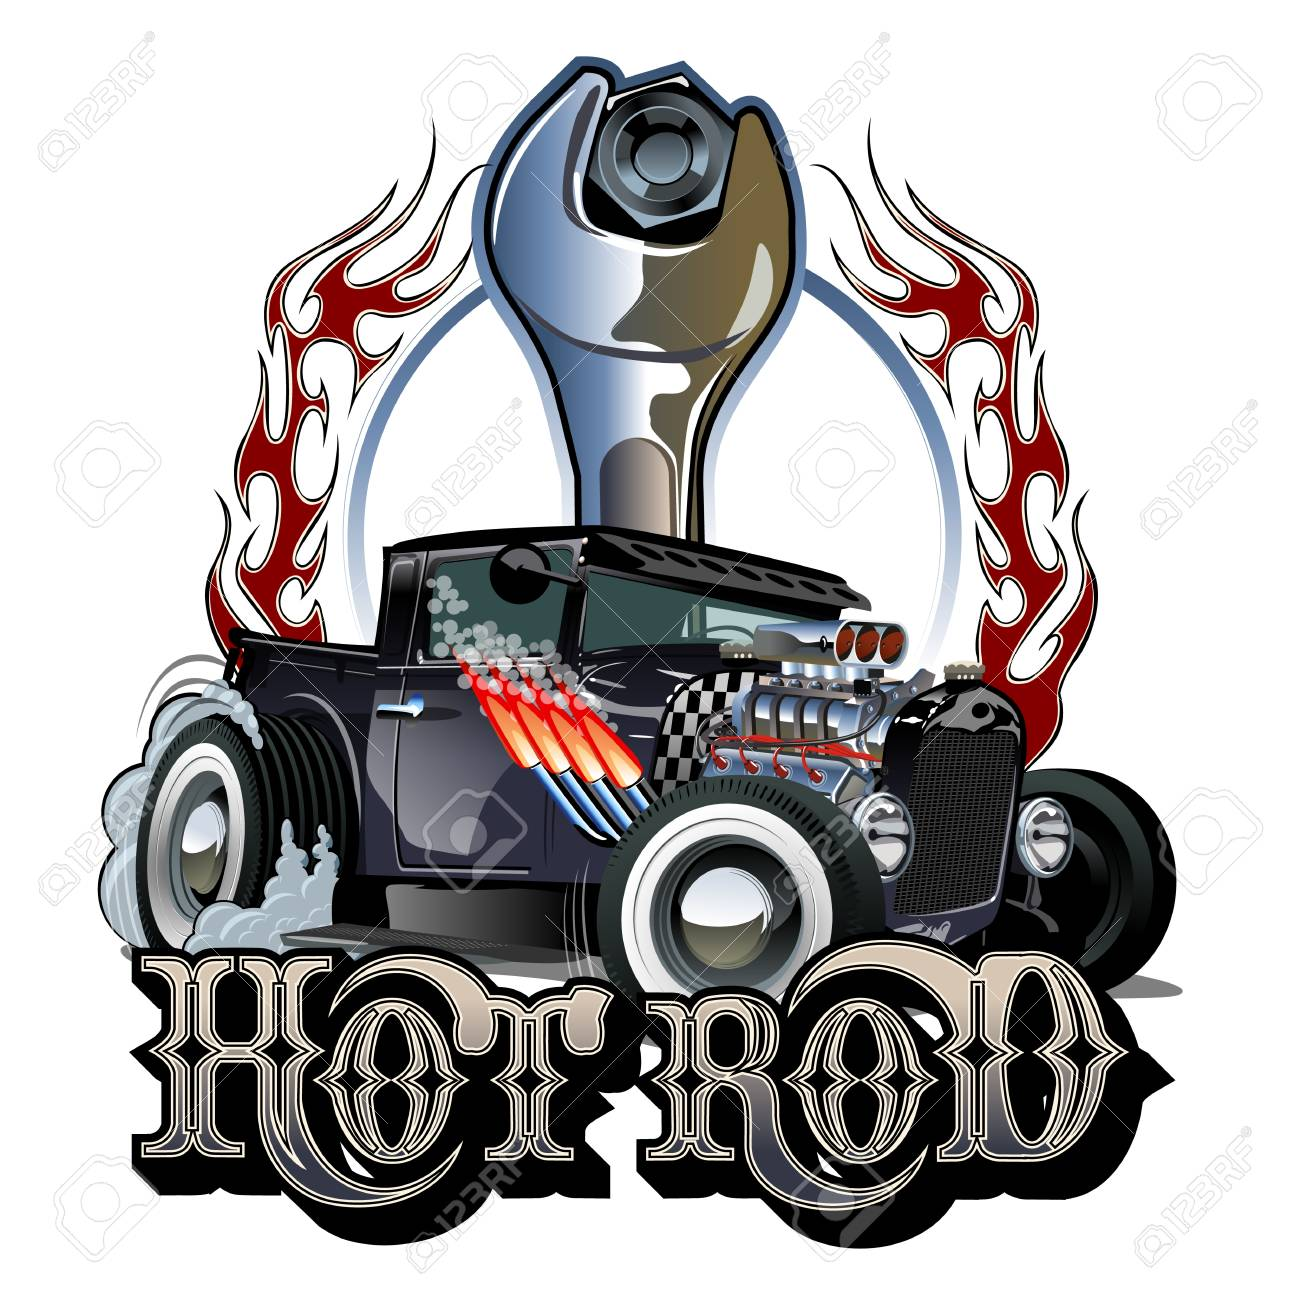 Cartoon Retro Hot Rod Poster Royalty Free Cliparts Vectors And Stock Illustration Image 112132658